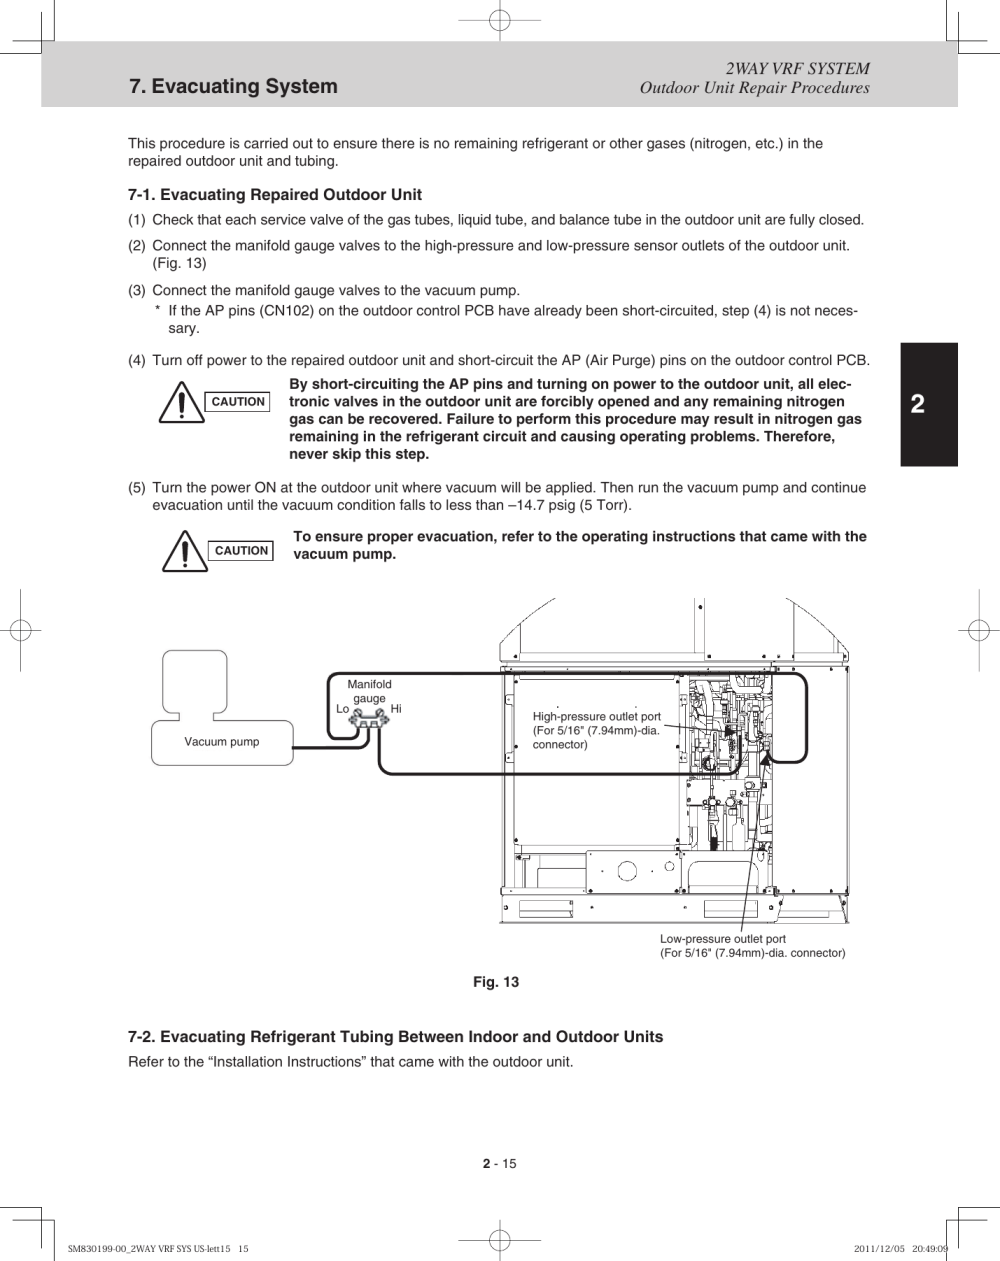 medium resolution of diagram 7a 2 x 2 port valve system wiring diagram name panasonic 2 way service manual